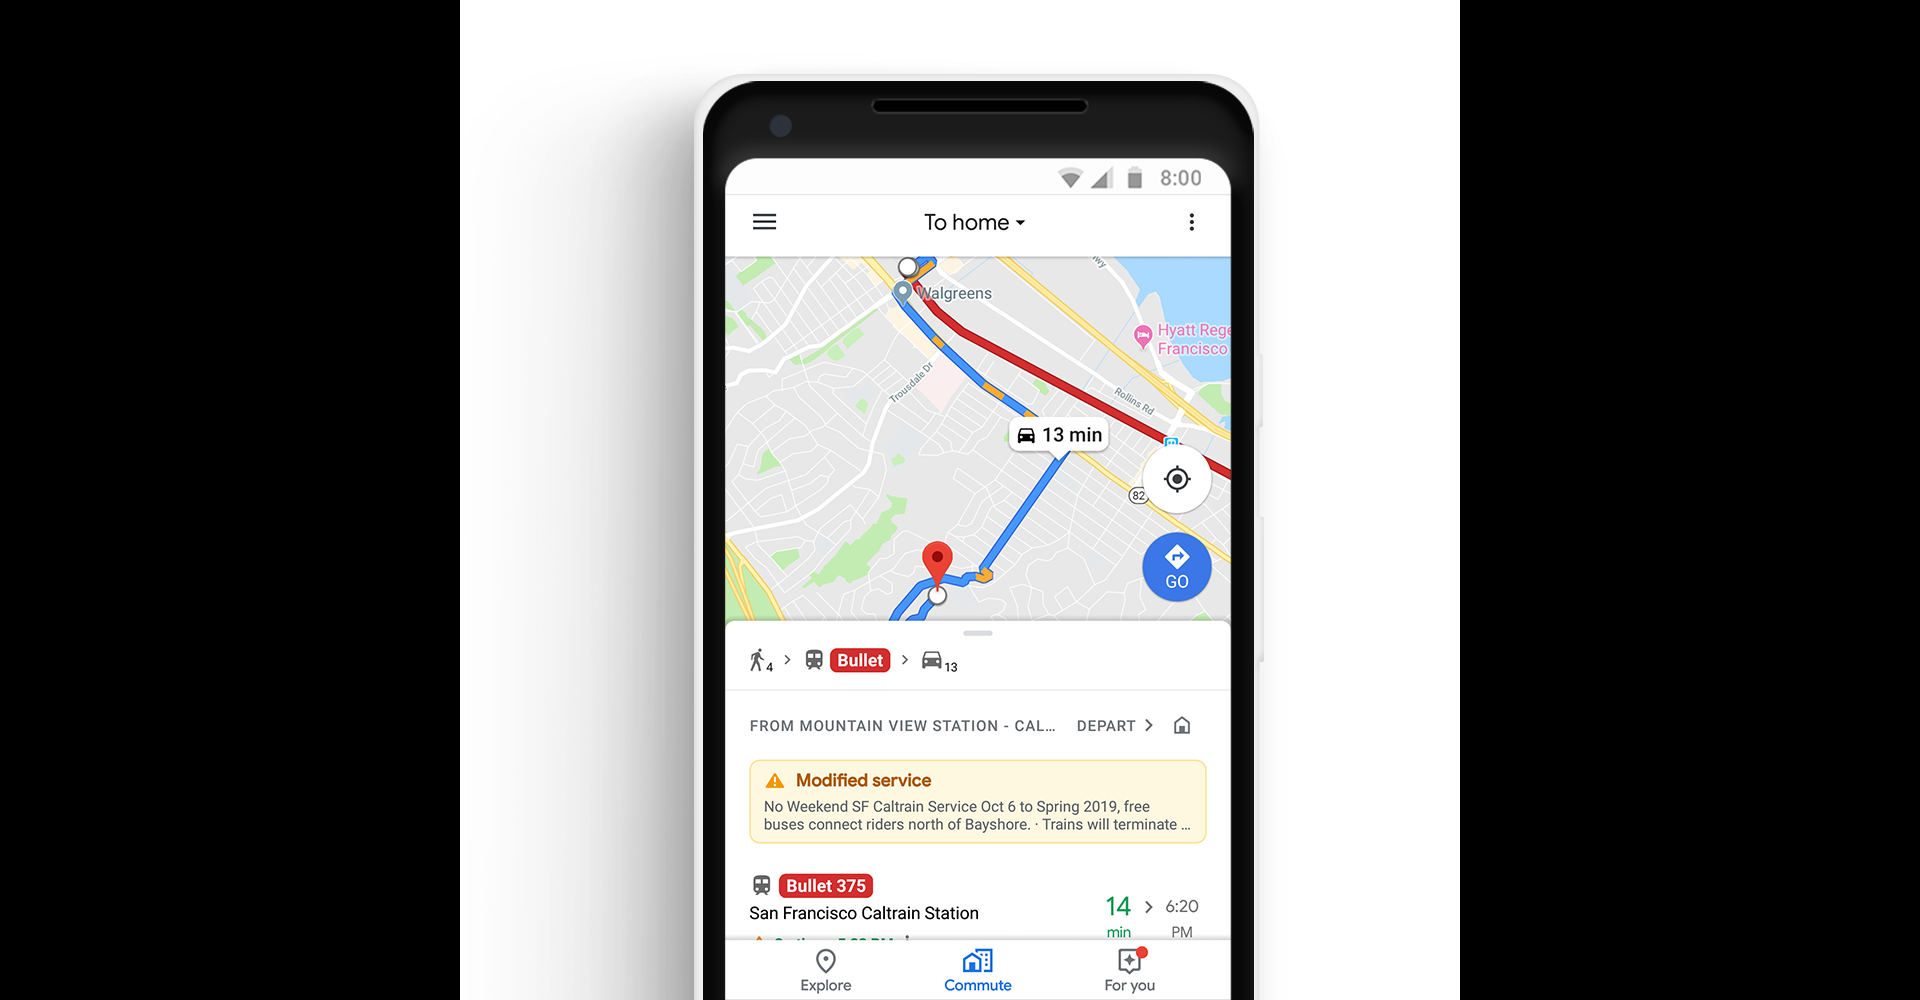 Google Maps Adds Commuting Features - MacStories on google maps app for iphone, google docs android app, google hangouts android app, google maps apple, google maps home, google maps technology, google maps web, google maps amazon, google maps tablet, google tv android app, google maps keyboard, google play android app, google groups android app, google maps travel, google plus android app, google analytics app, google maps indoor map, google earth app, google maps books, app store app,